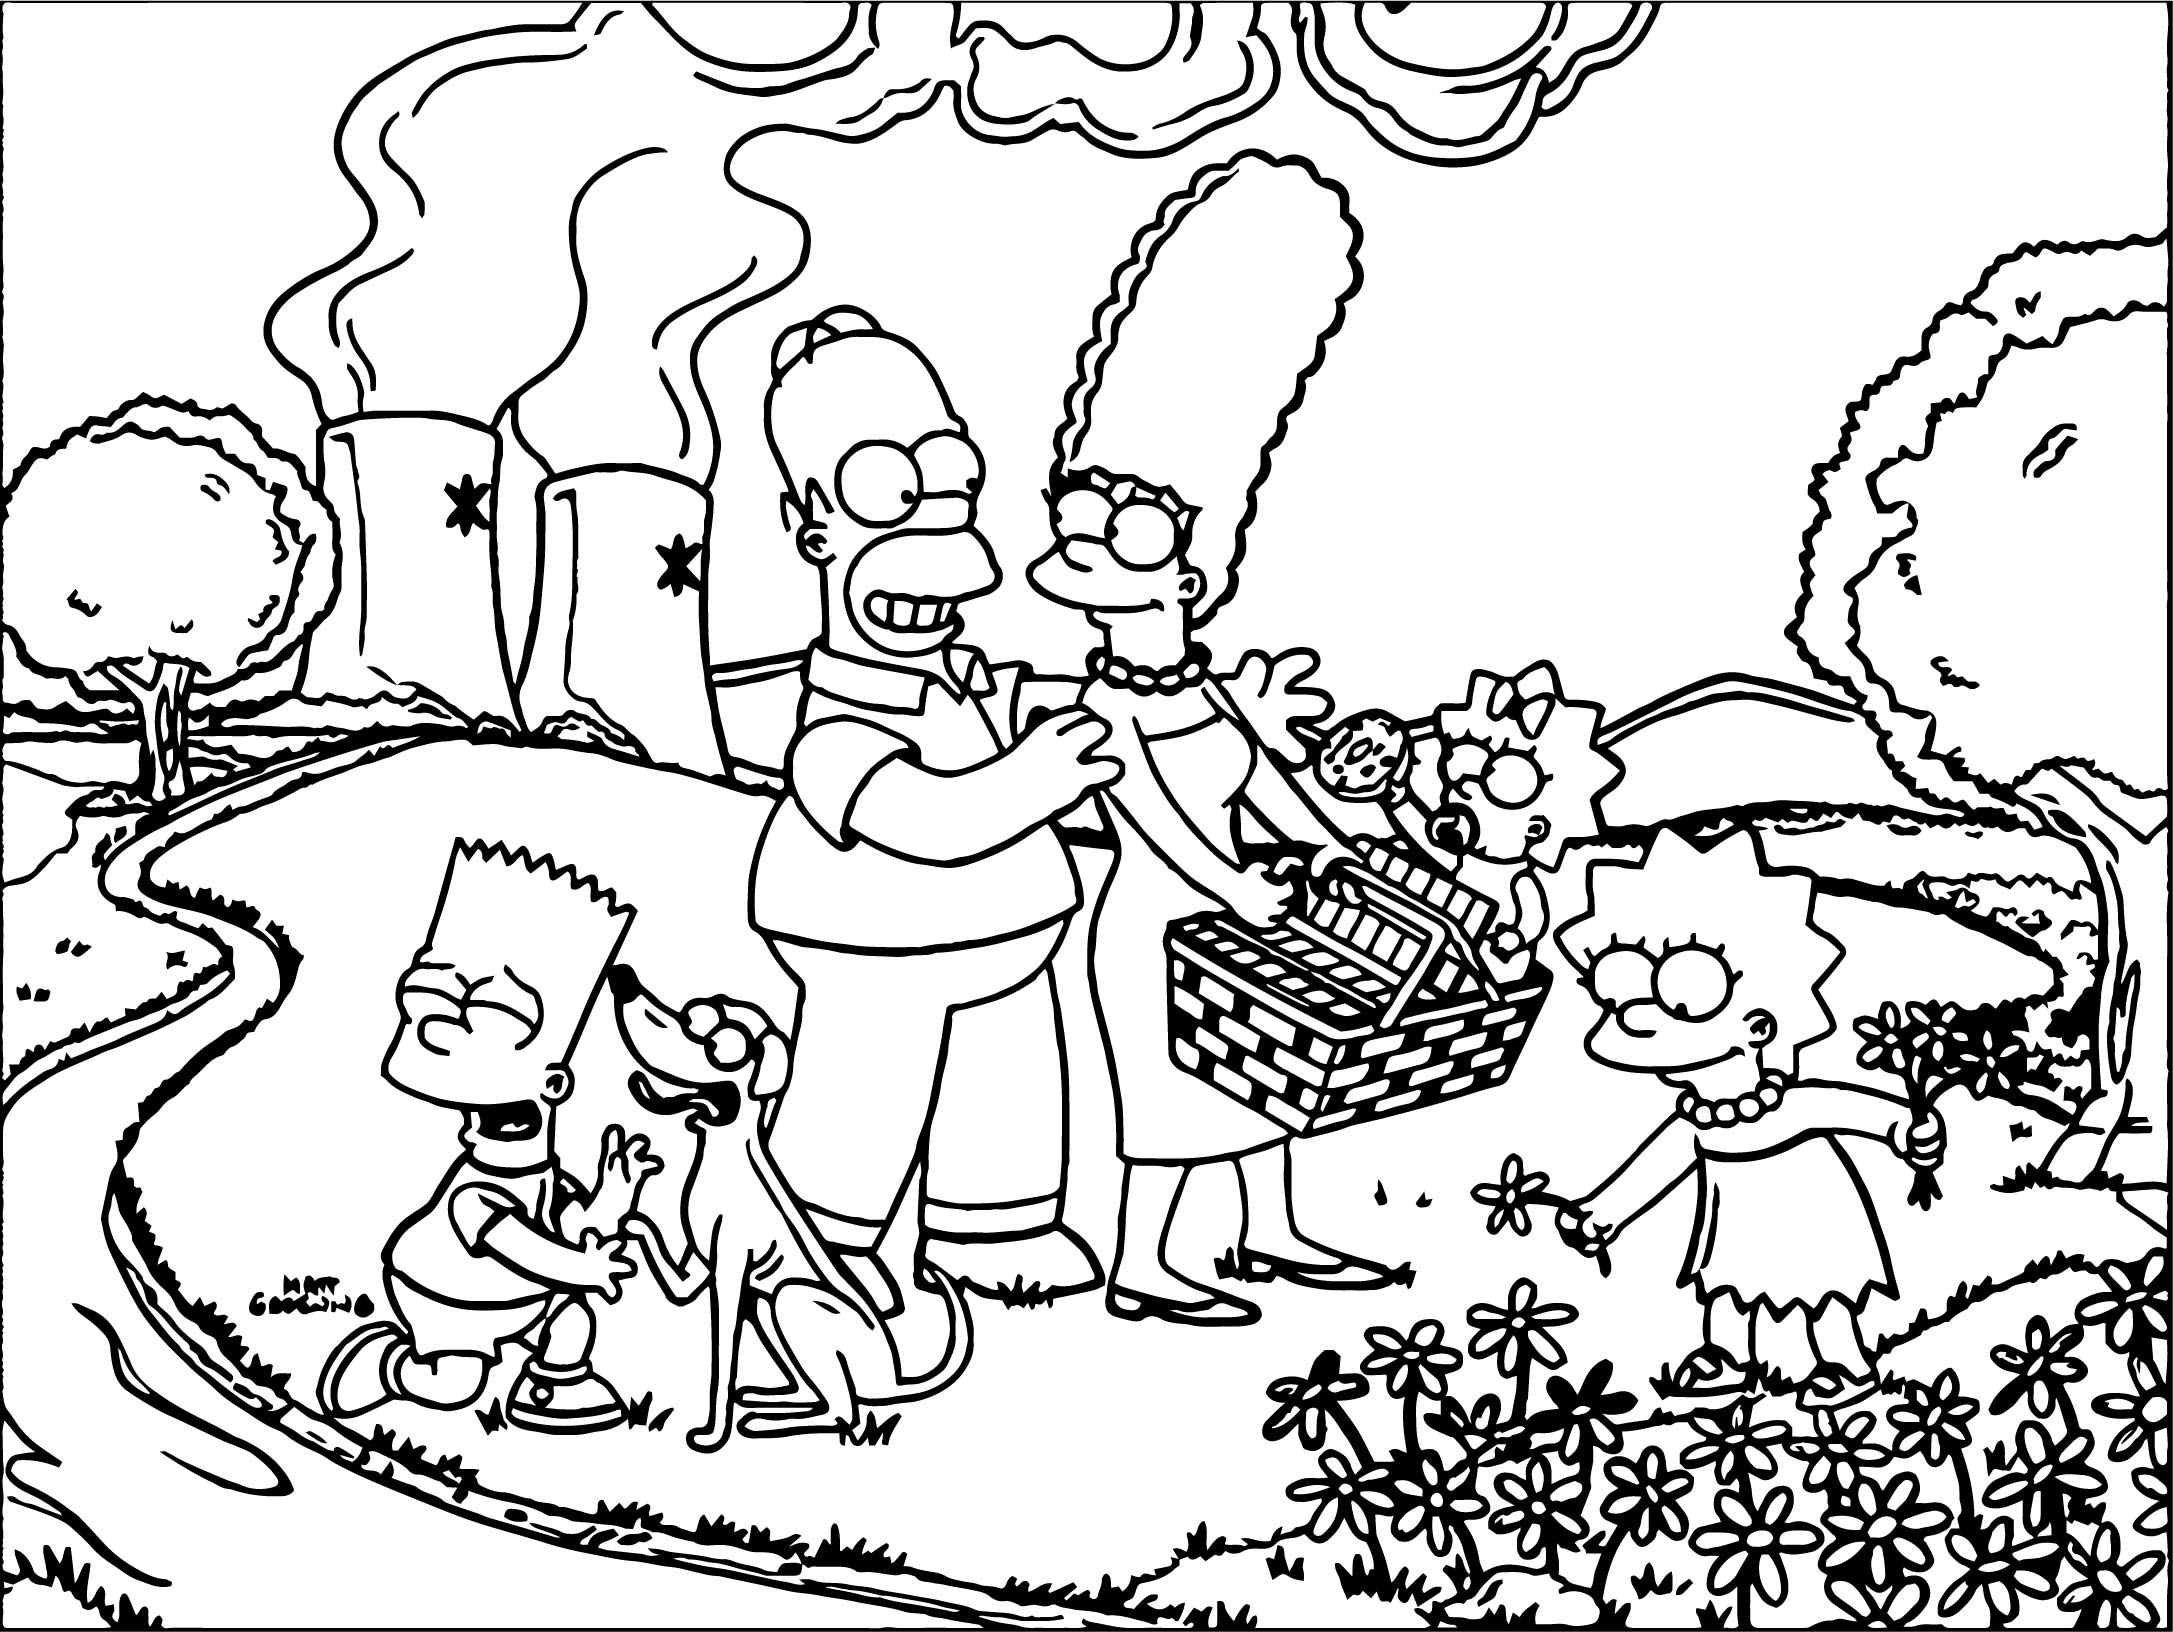 coloring pages of the simpsons - simpsons springfield coloring page